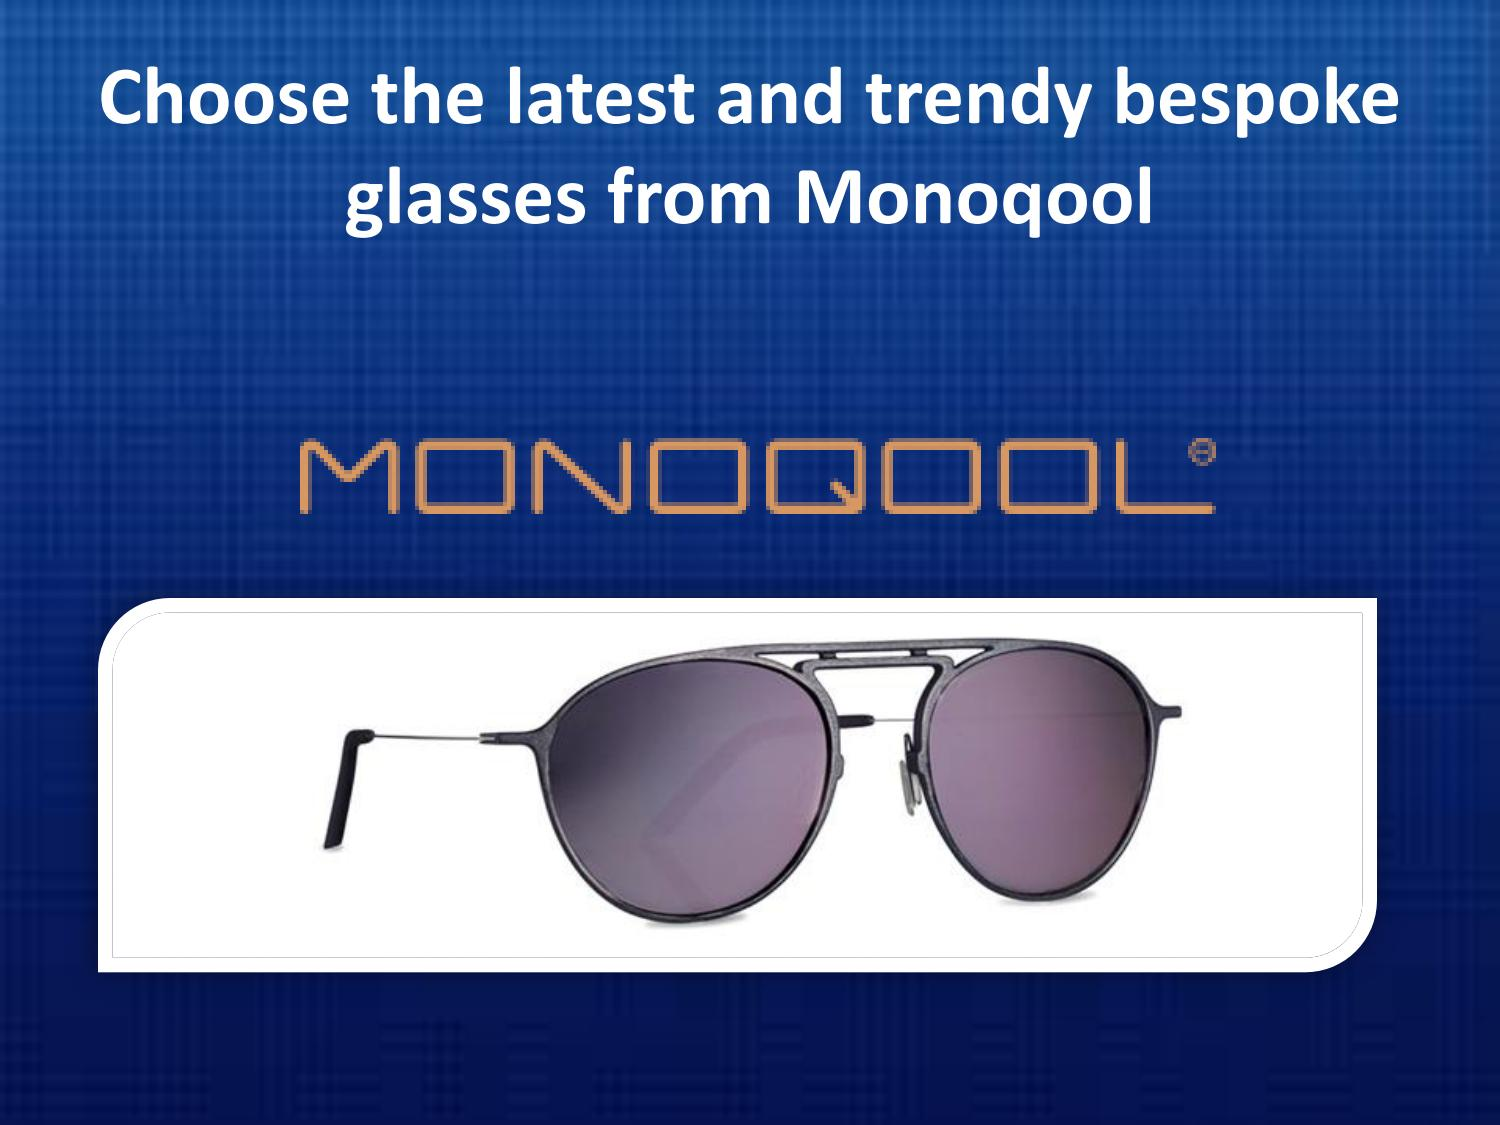 5c27a46624 The collection of tailor-made eyewear by Mono qool - issuu